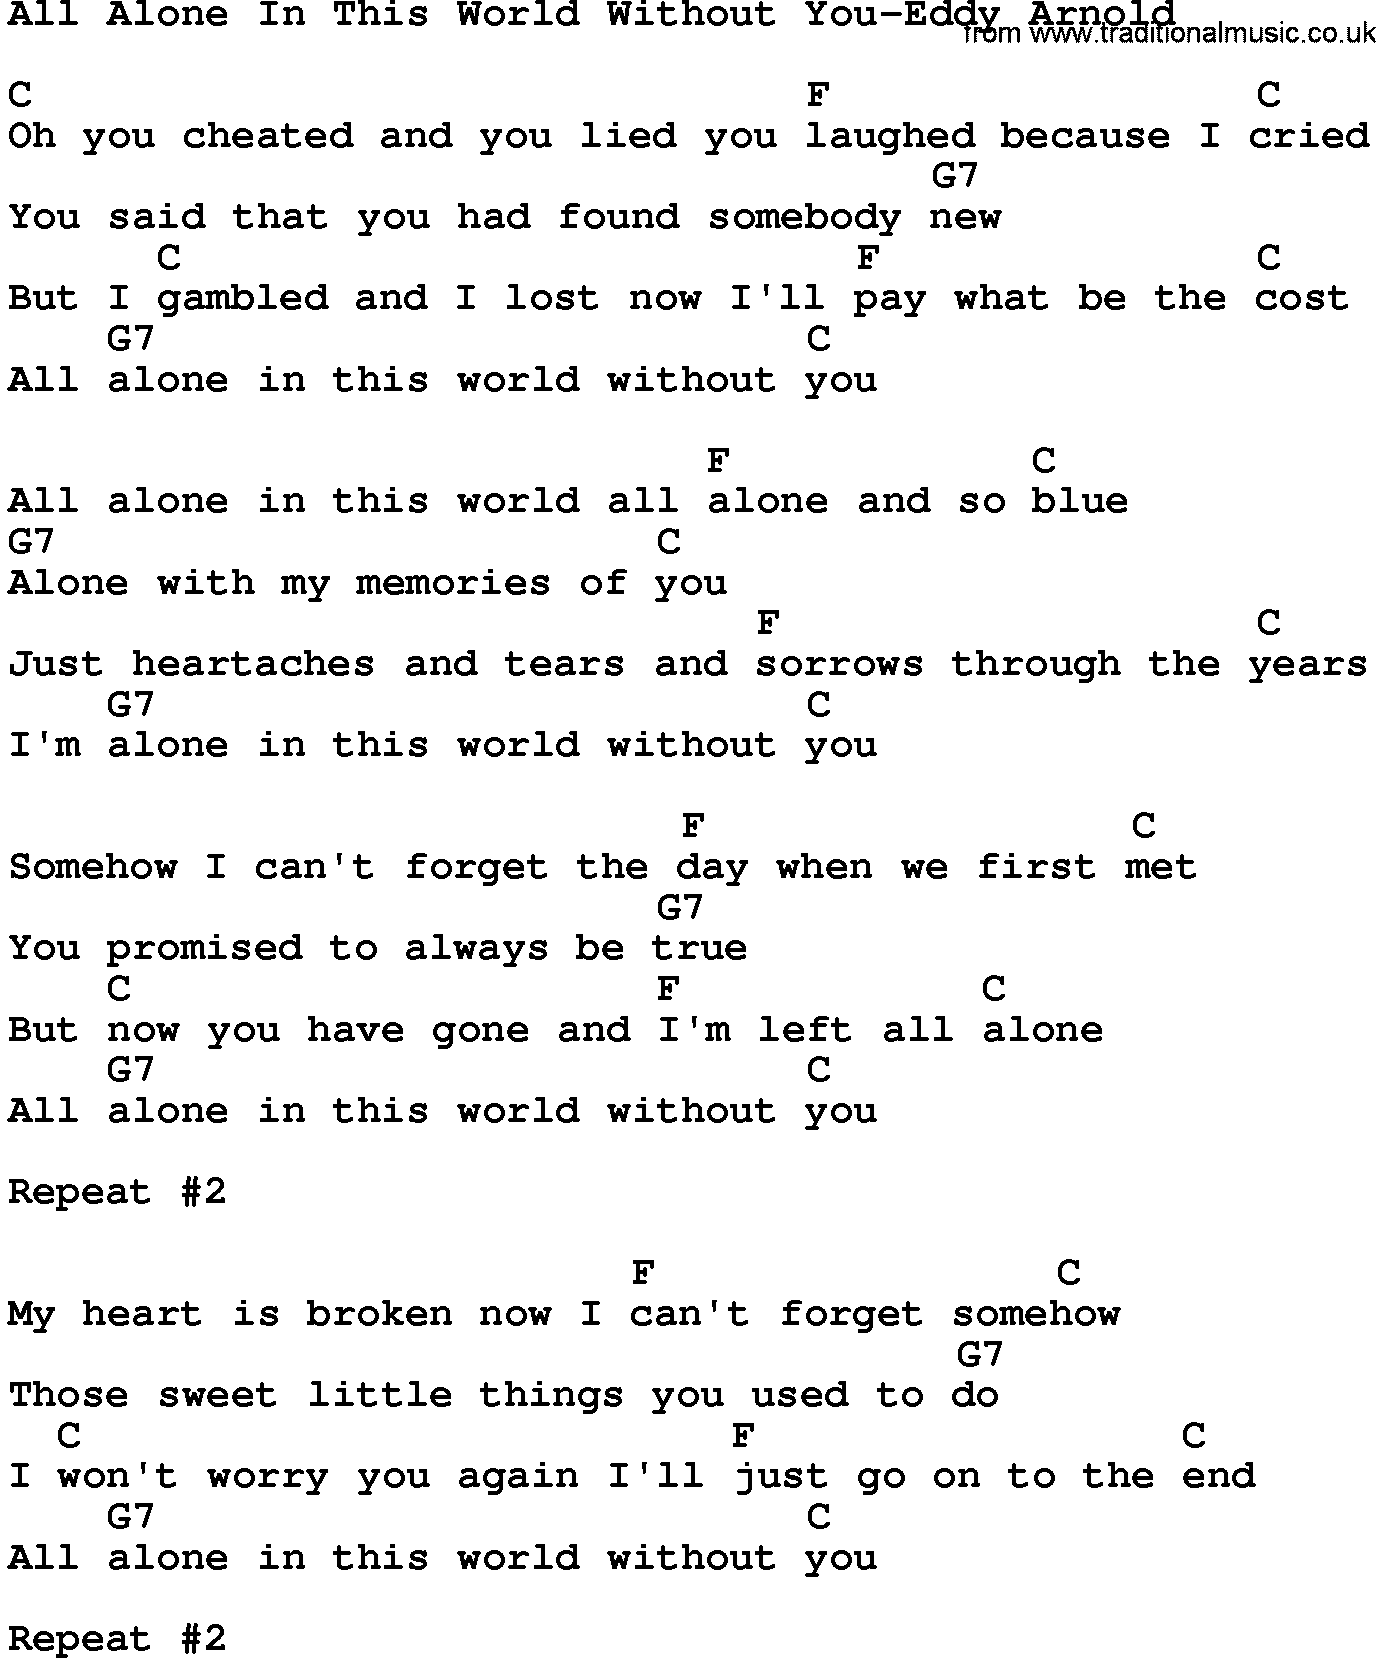 Country Musicall Alone In This World Without You Eddy Arnold Lyrics